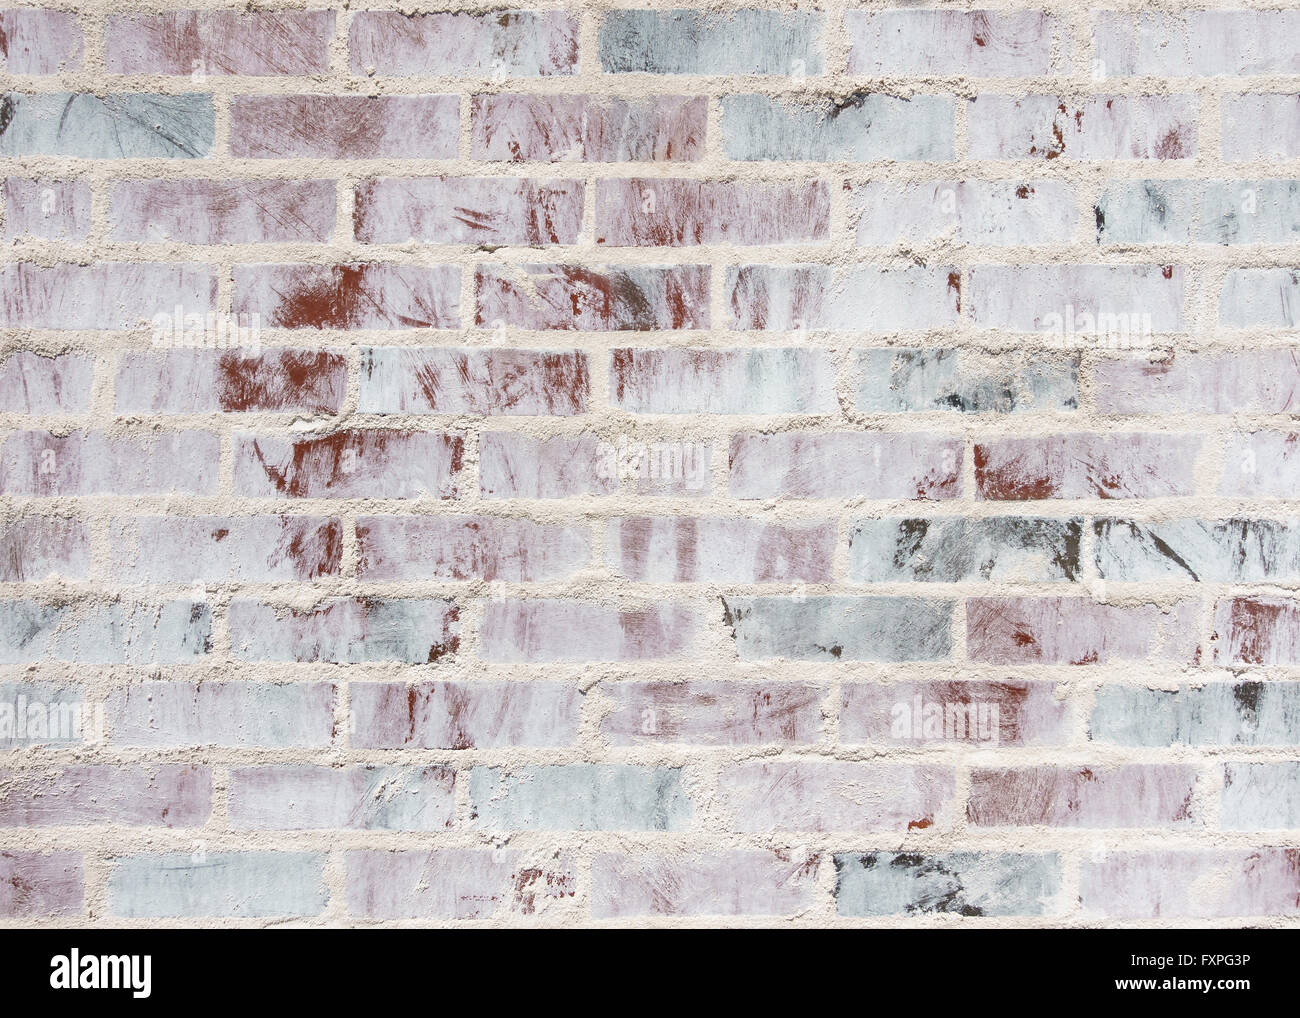 A whitewashed brick wall texture - Stock Image